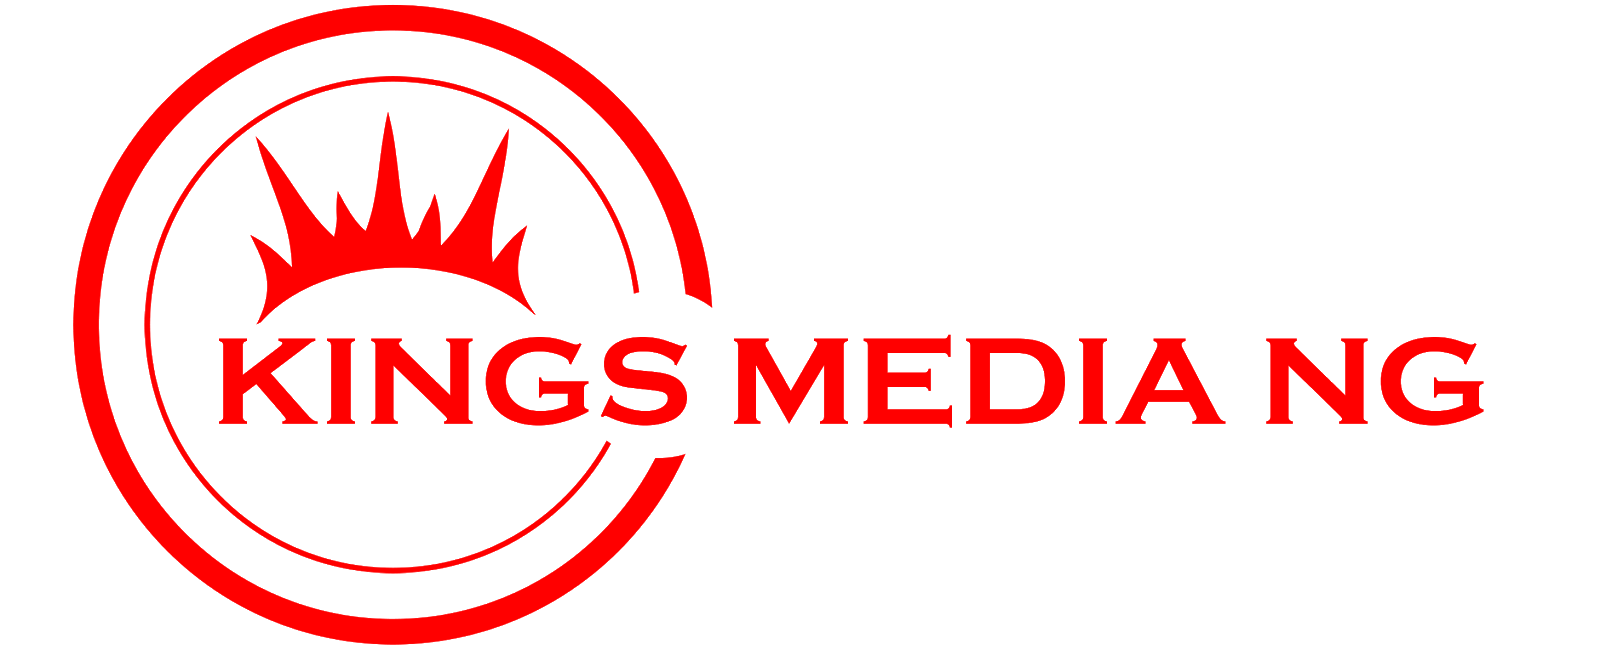 Kings Media Nigeria News